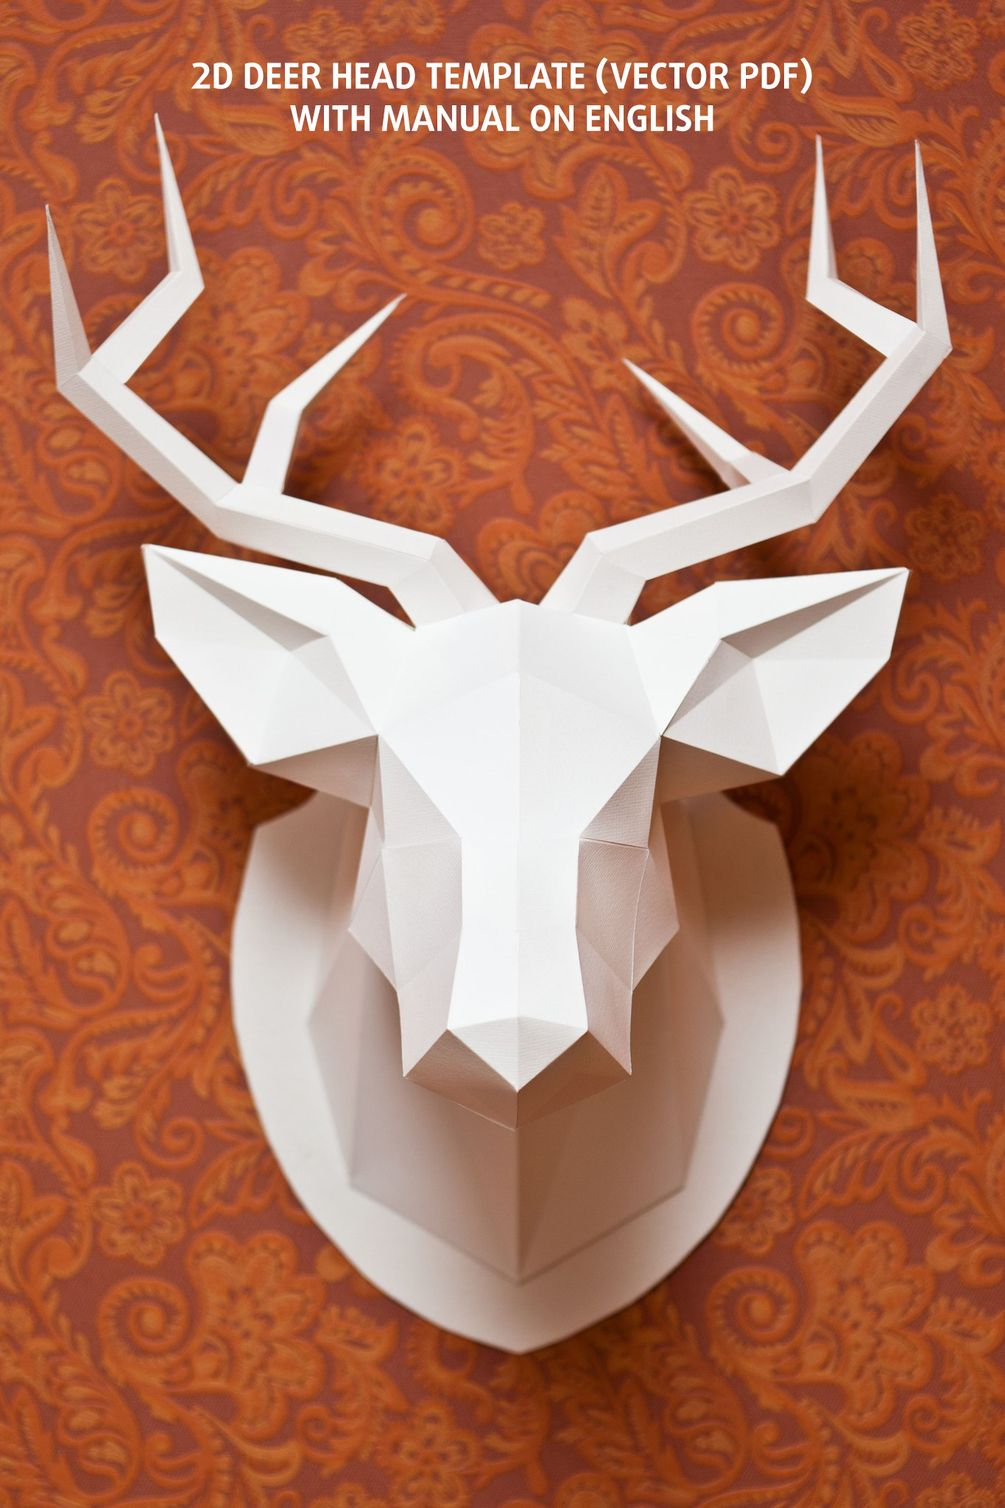 2D Deer Head Template   Office paper, Paper size and 2d